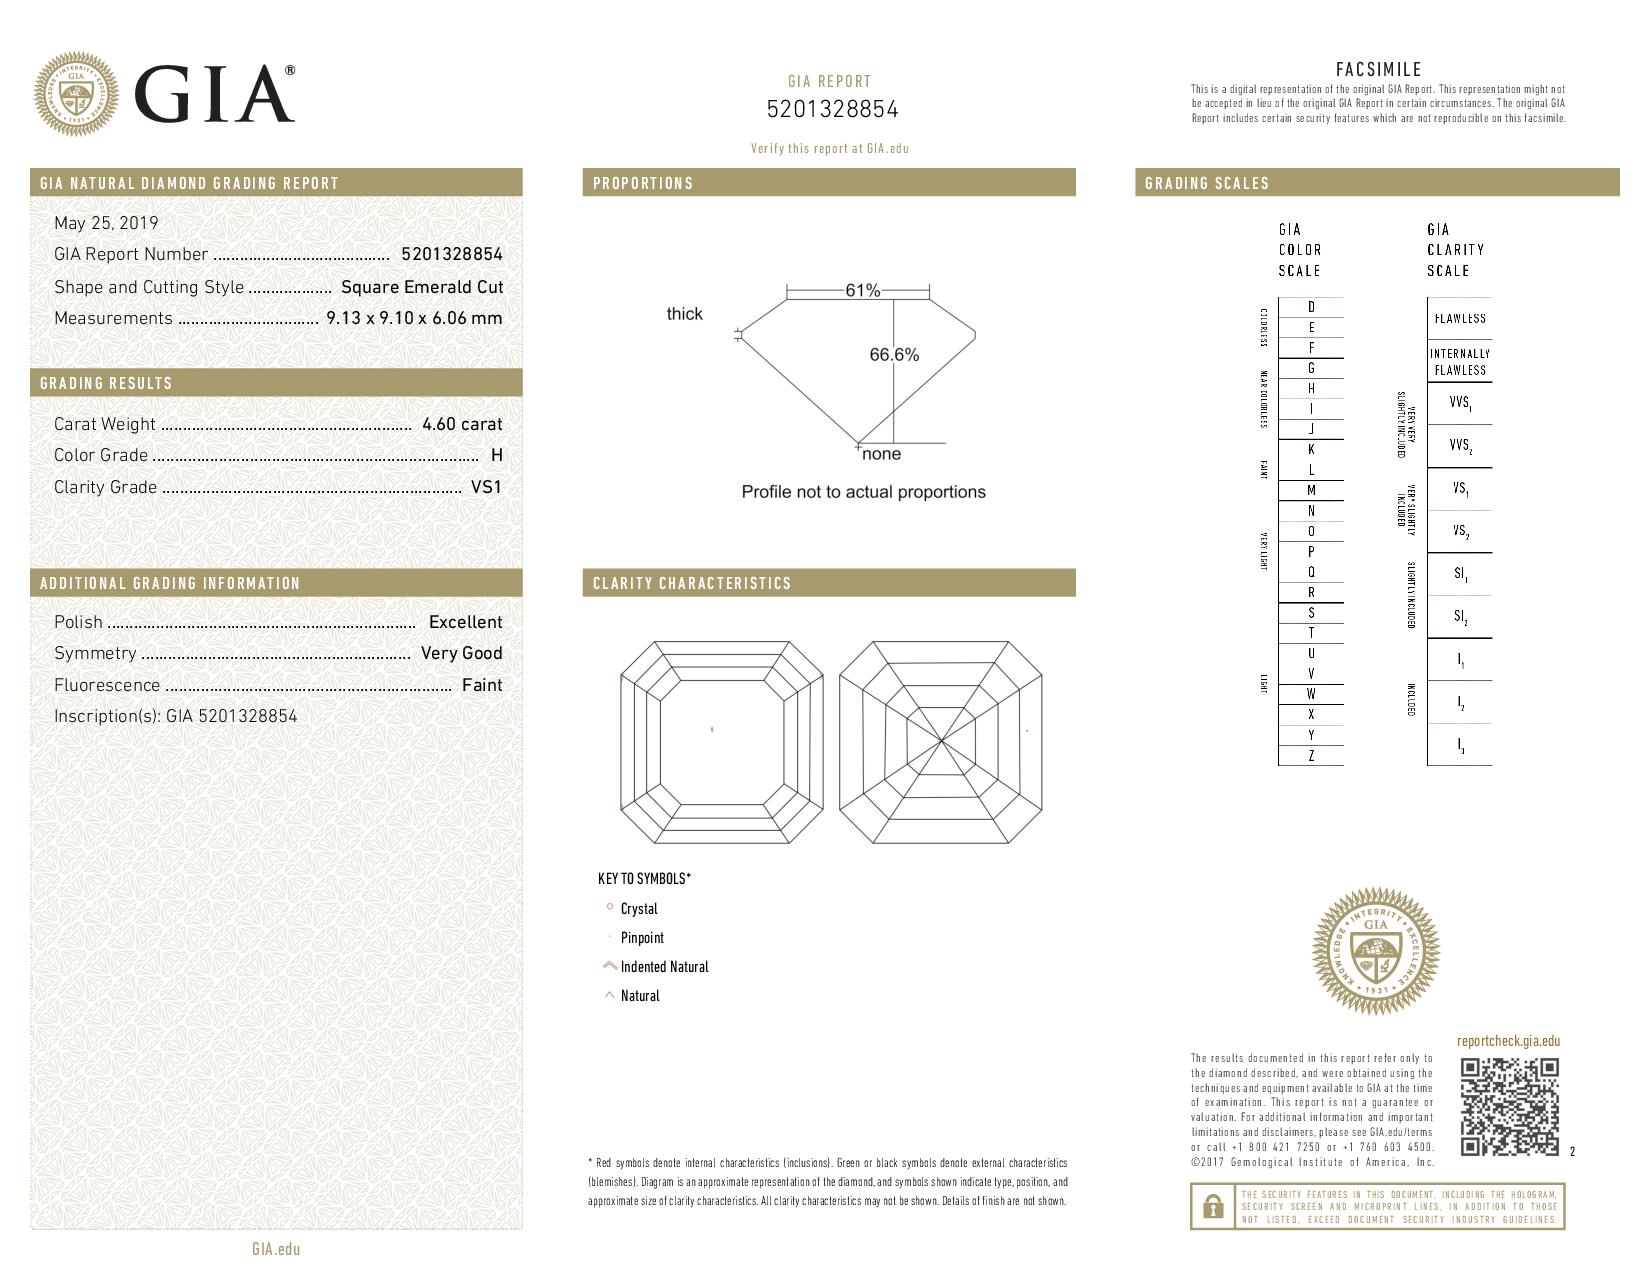 This is a 4.60 carat asscher shape, H color, VS1 clarity natural diamond accompanied by a GIA grading report.